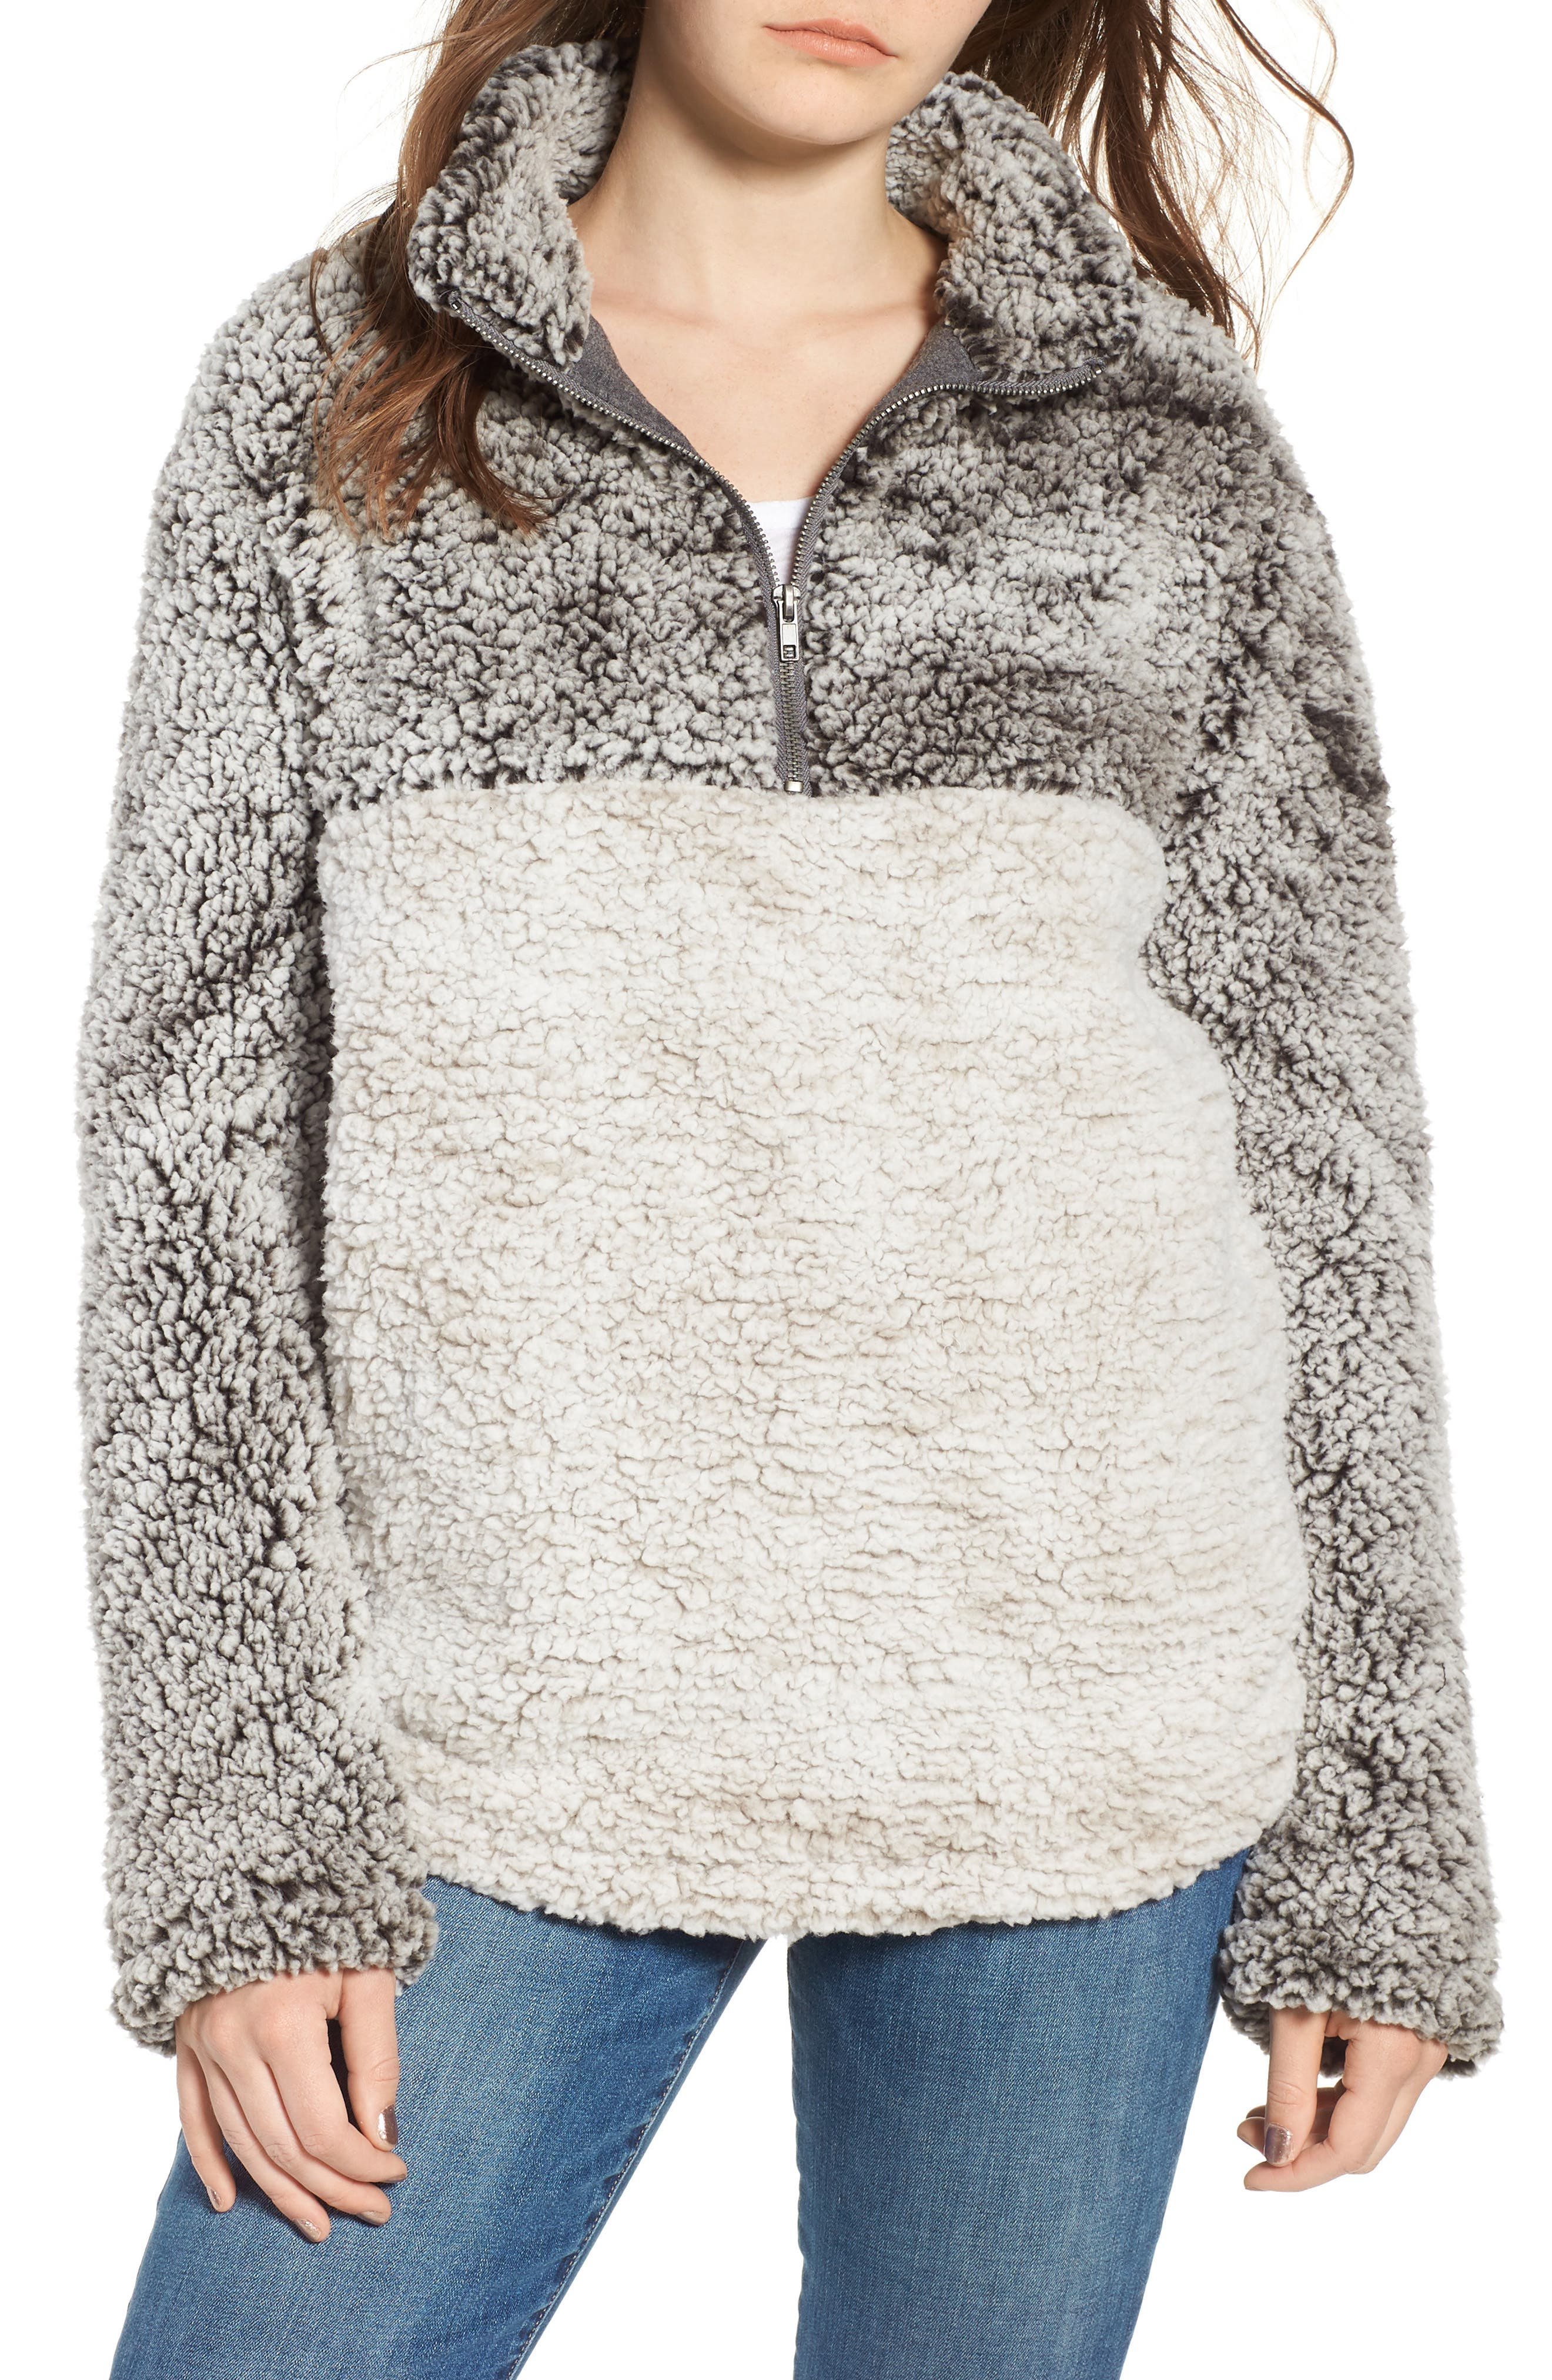 Wubby Fleece Pullover,                             Main thumbnail 1, color,                             Charcoal/Ivory